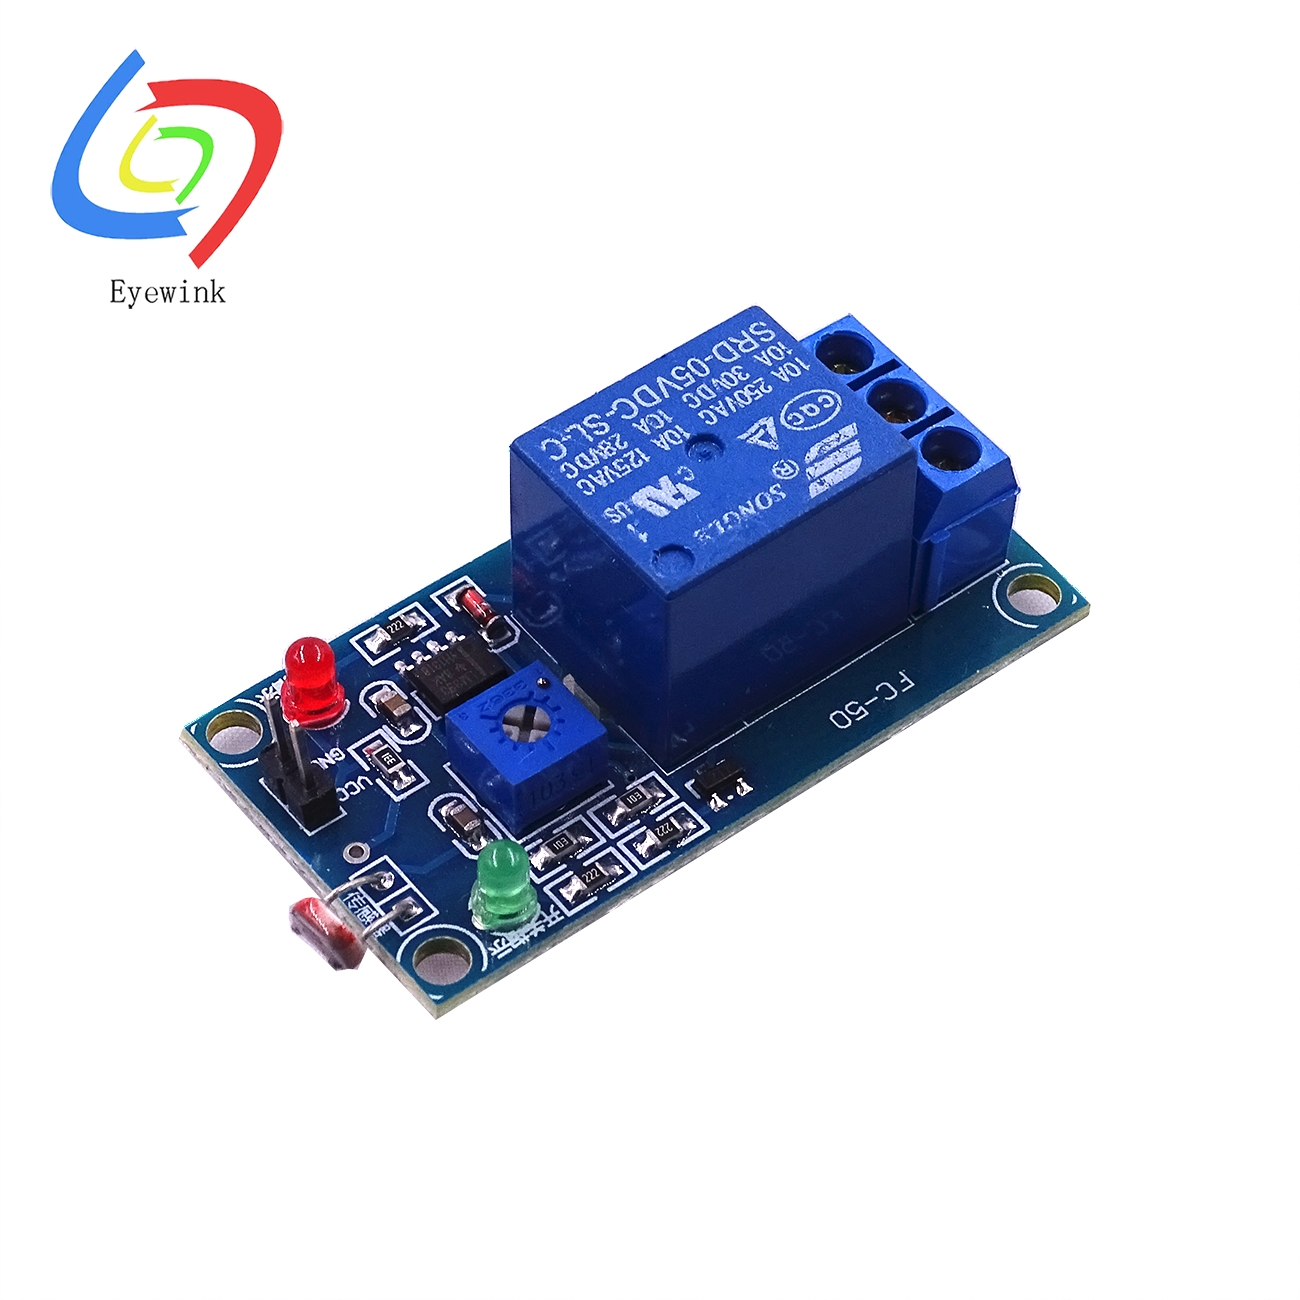 5v 12v Light Photoswitch Sensor Switch Ldr Photoresistor Relay Circuit Module Detection Photosensitive Board In Integrated Circuits From Electronic